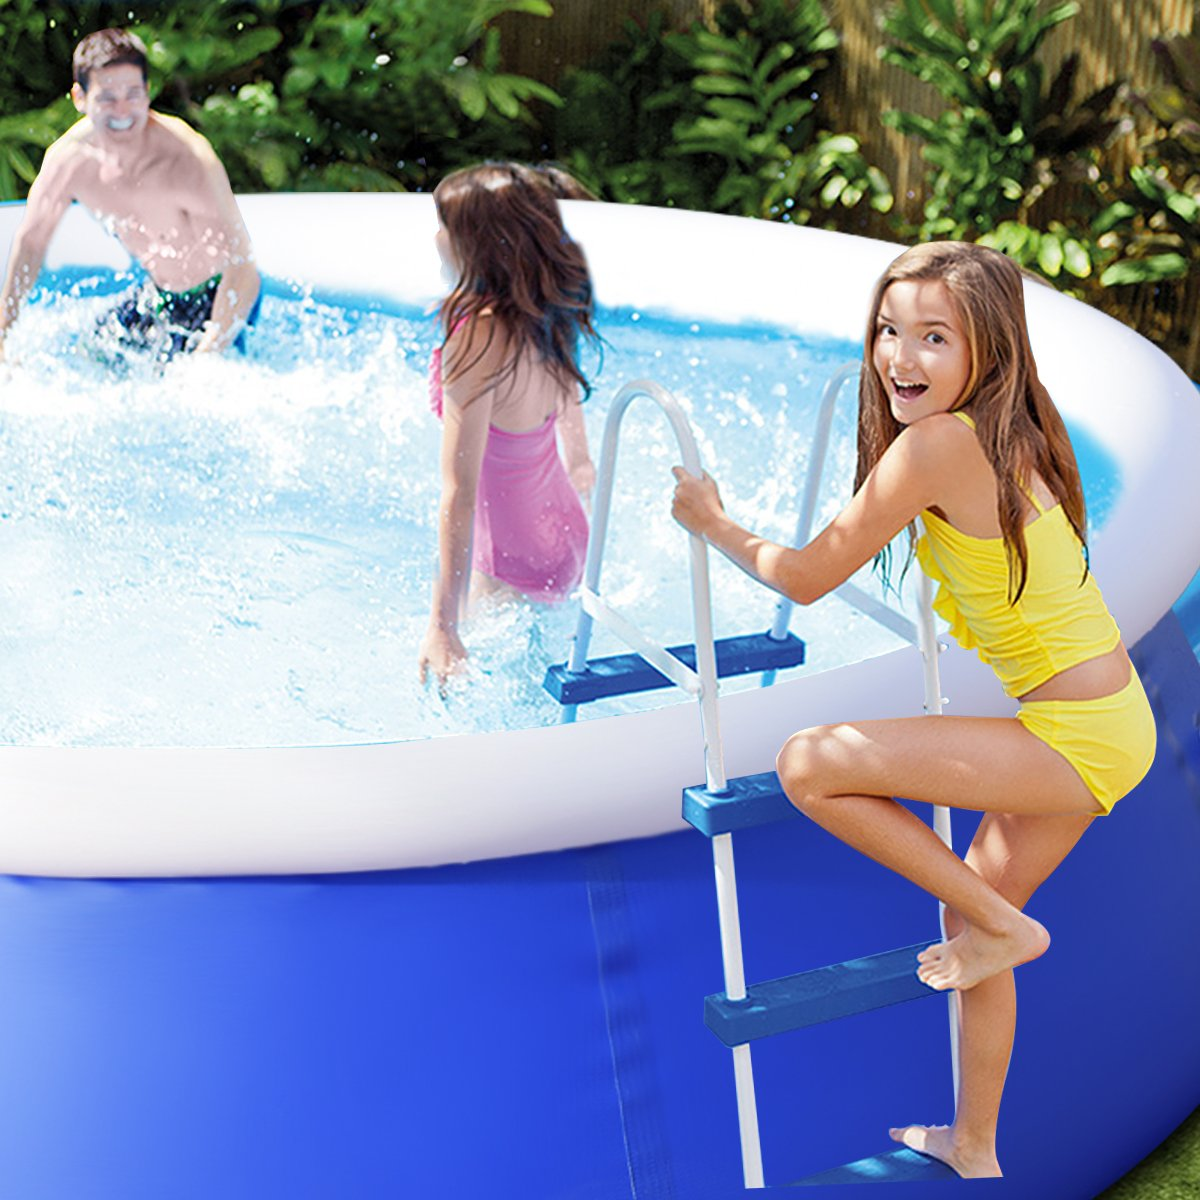 Goplus Inflatable Swimming Pool Family Lounge Pool Swim Play Center Easy Set Pool without Pump, 8' x 30'' (Blue) by Goplus (Image #4)